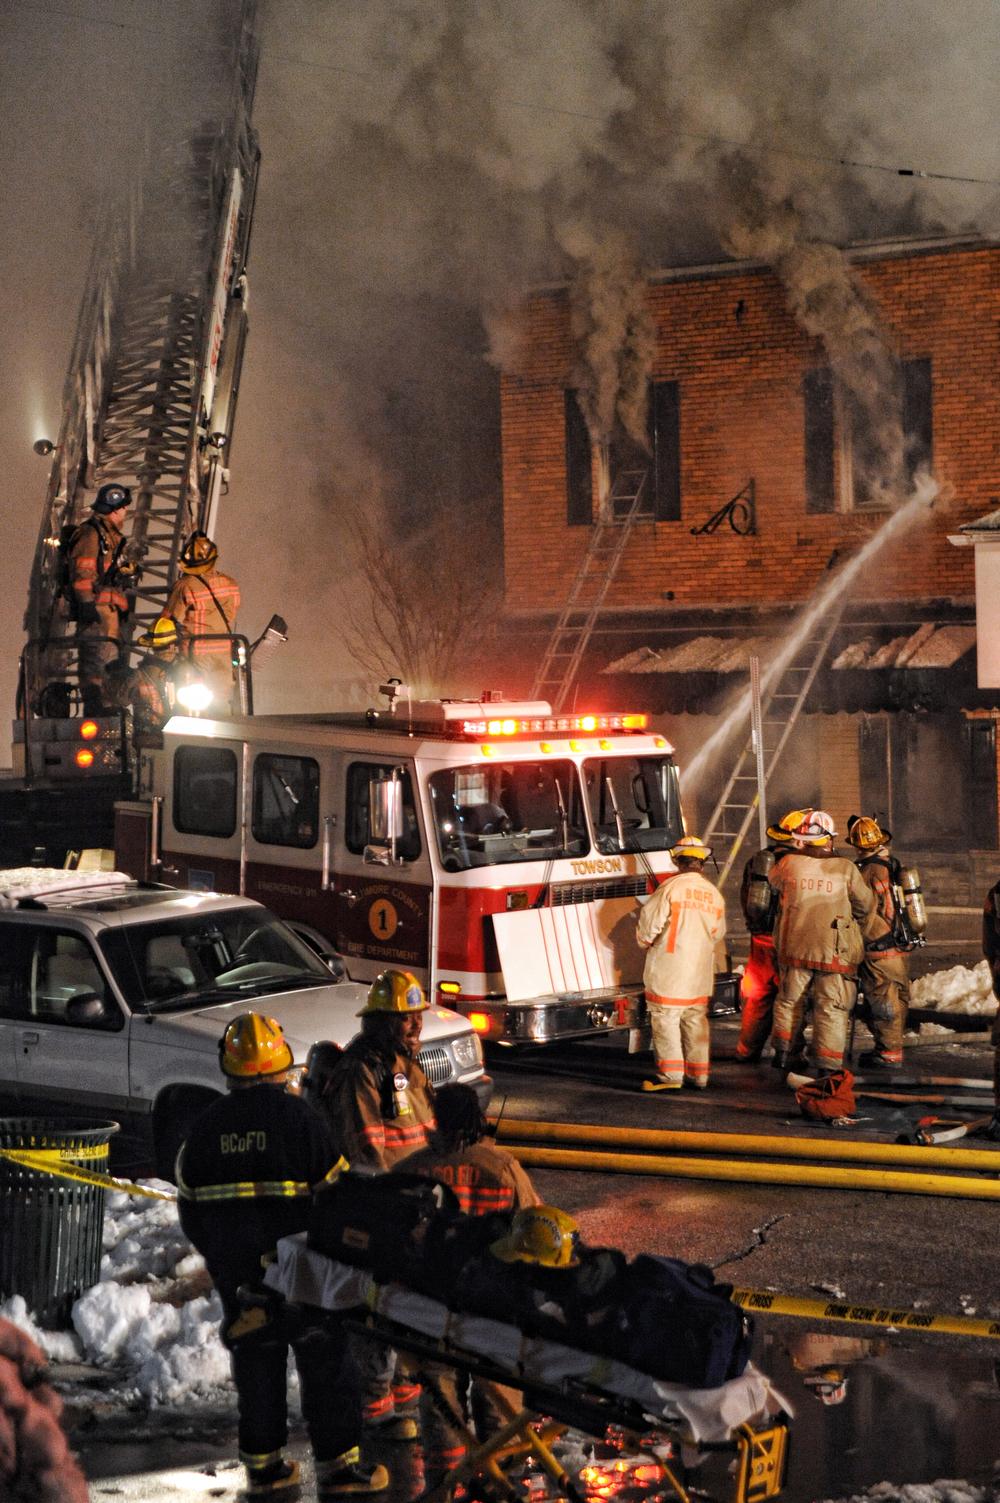 Firefighters battle a two alarm fire at the Charles Village Pub in Towson, MD. The fire broke out about 7:35pm and took over 100 firefighters and 25 trucks one hour to contain the blaze.